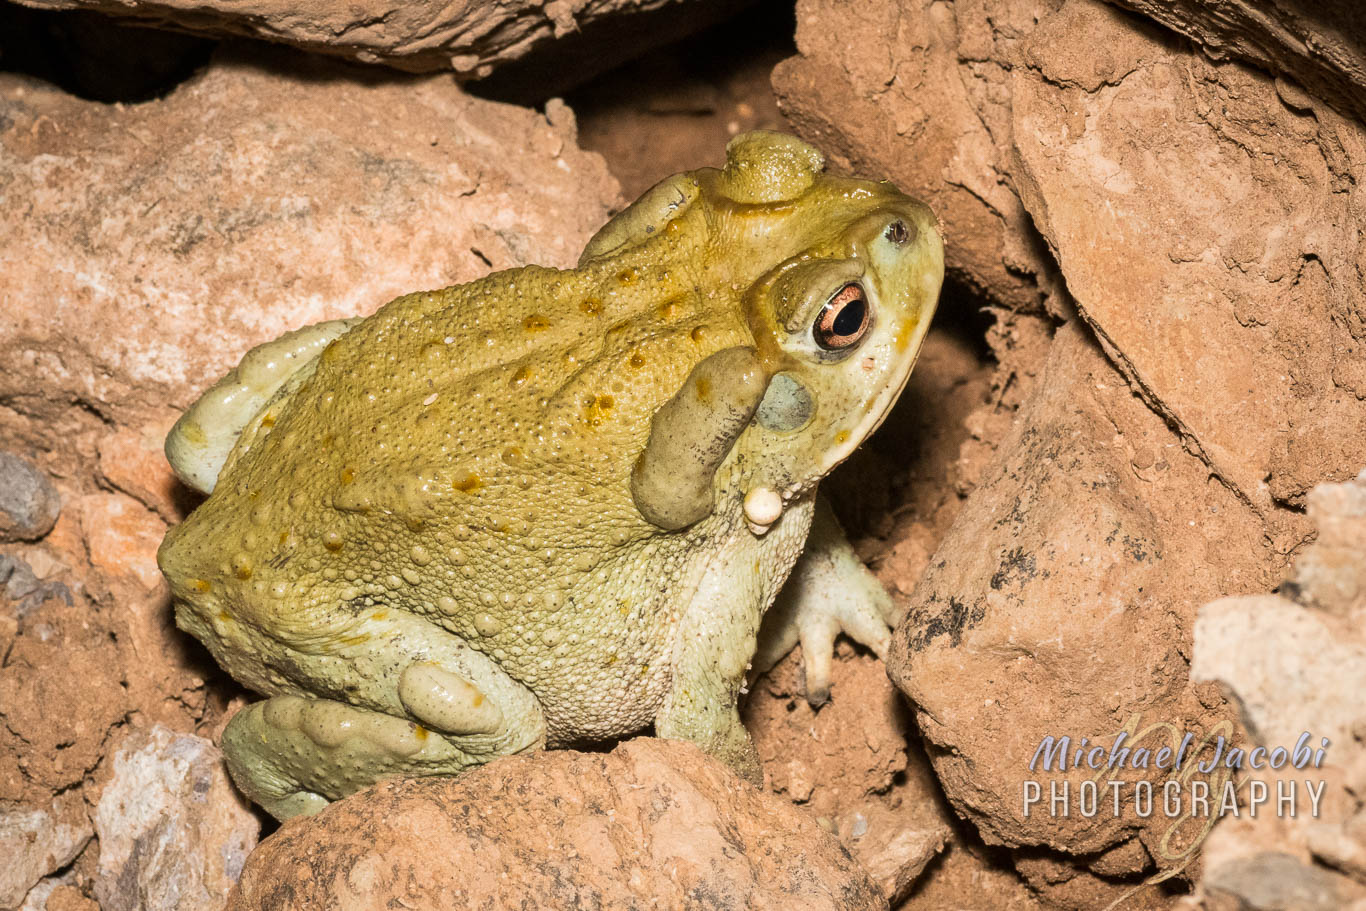 Sonoran Desert Toad ( Incilius alvarius ), one of several from my Old Sasco Road adventure.